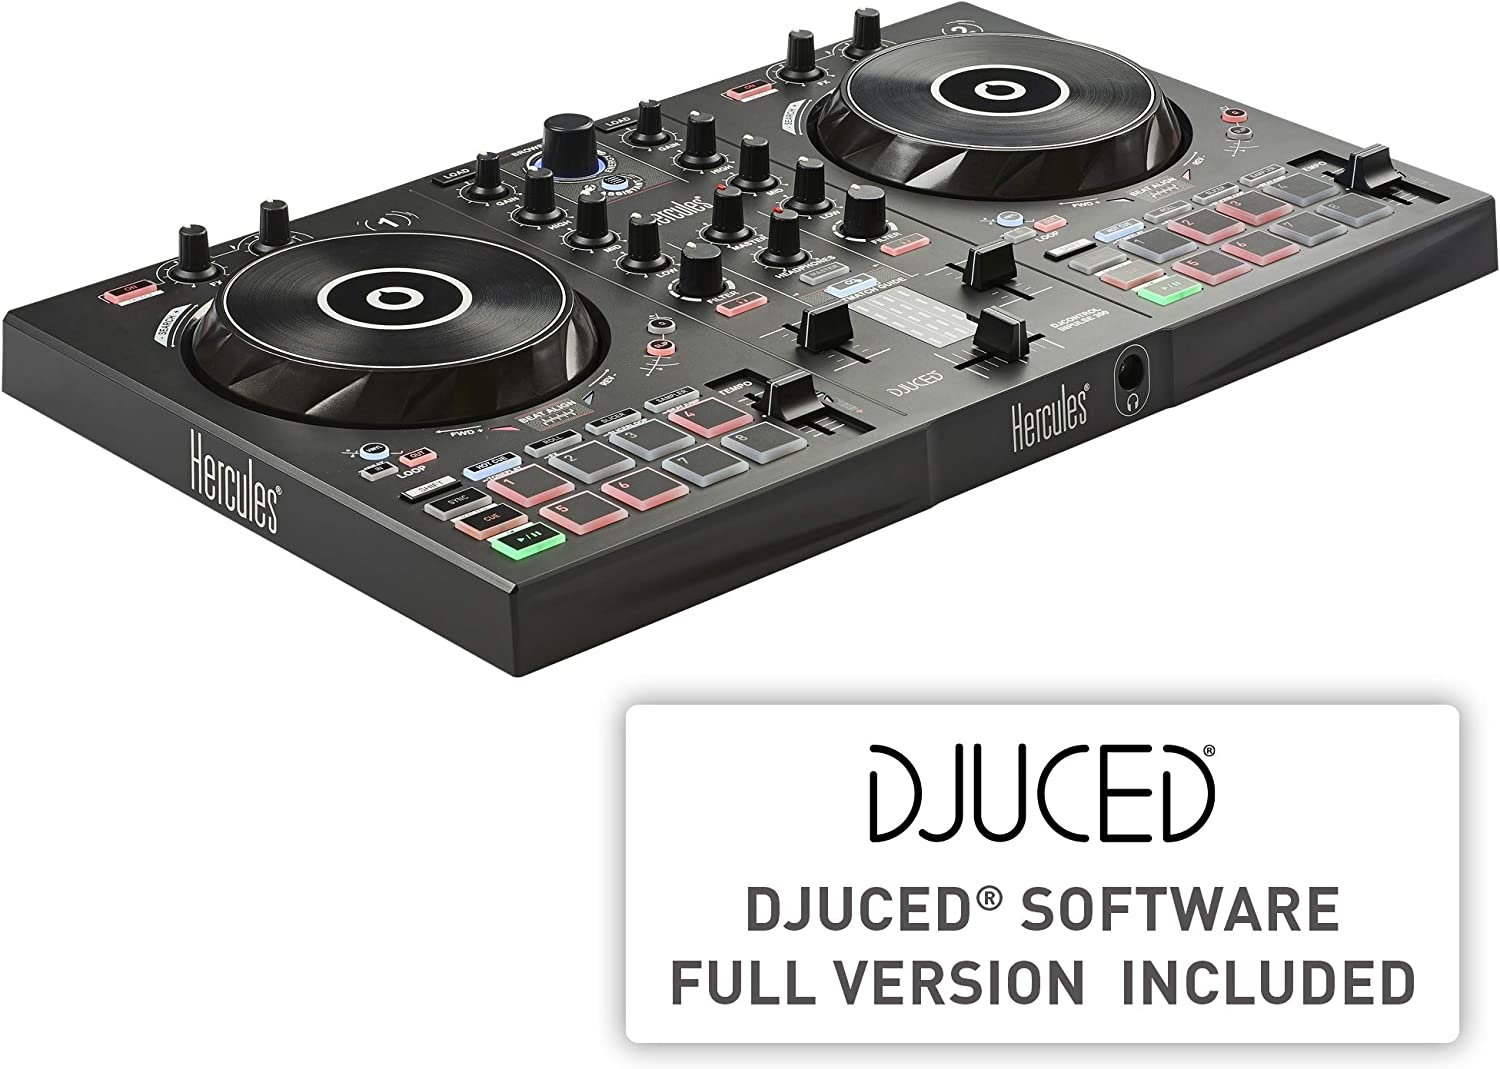 Hercules DJ Control Inpulse 300 | 2 Channel USB Controller, with Beatmatch Guide, DJ Academy, and full DJ software DJUCED included